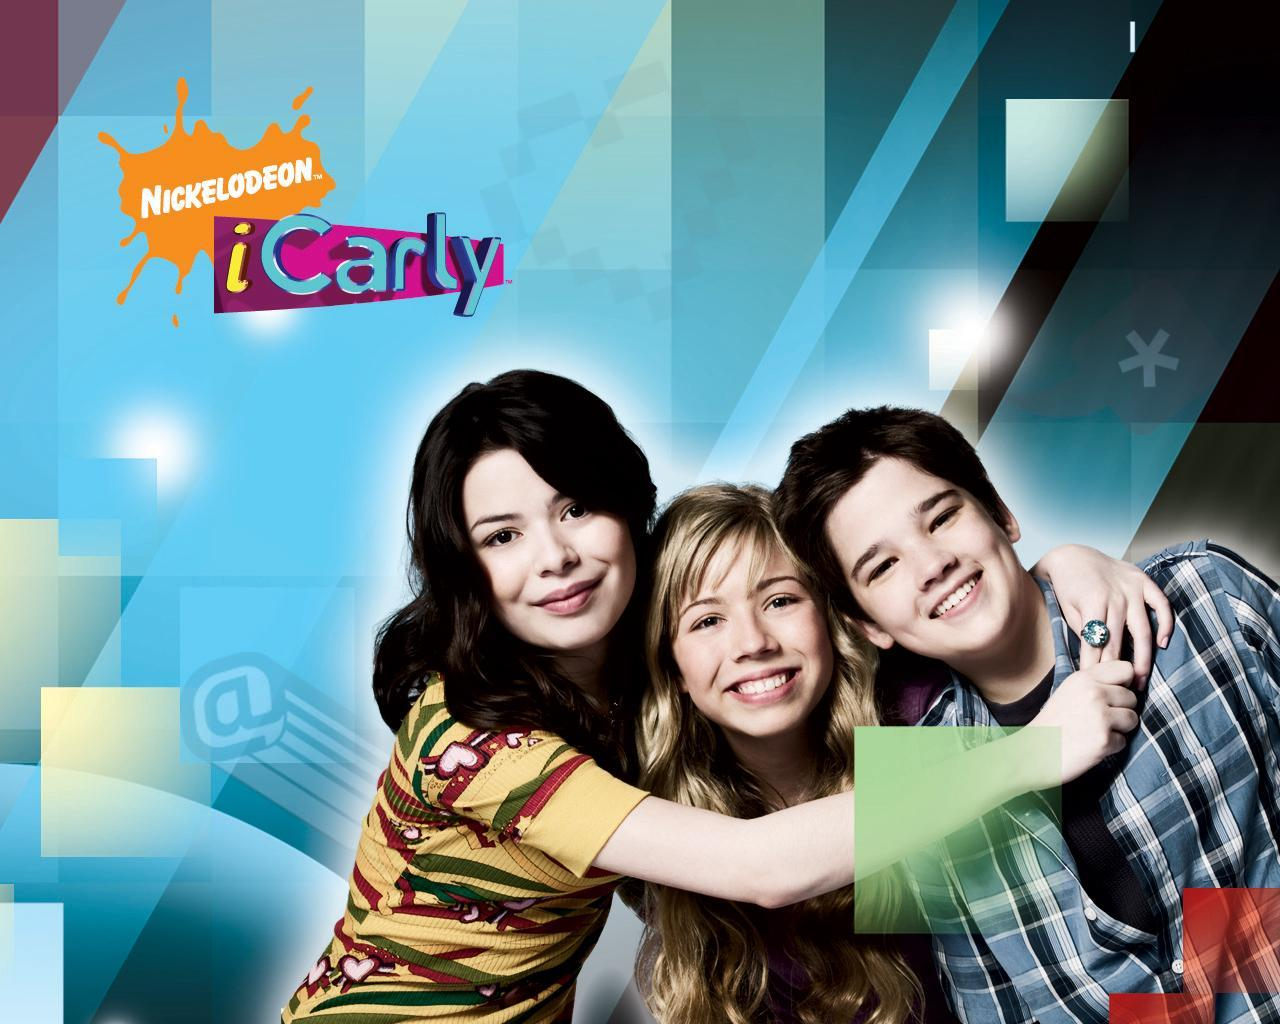 1280x1024 Image gallery for iCarly (TV Series) - FilmAffinity